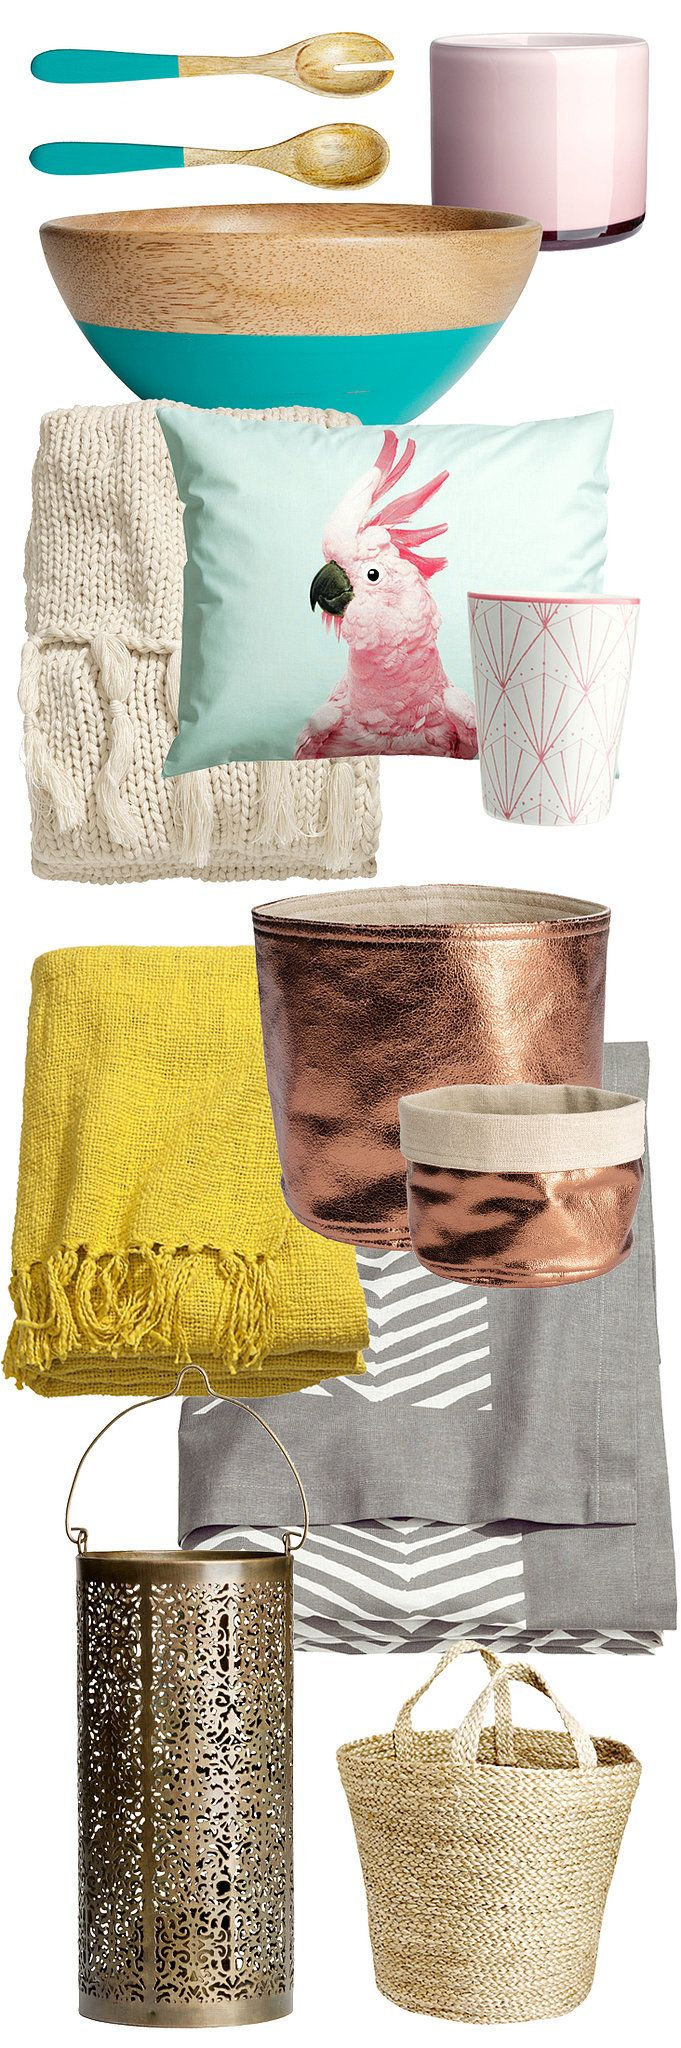 H&M's Spring Collection Is Blooming With Budget-Friendly Decor